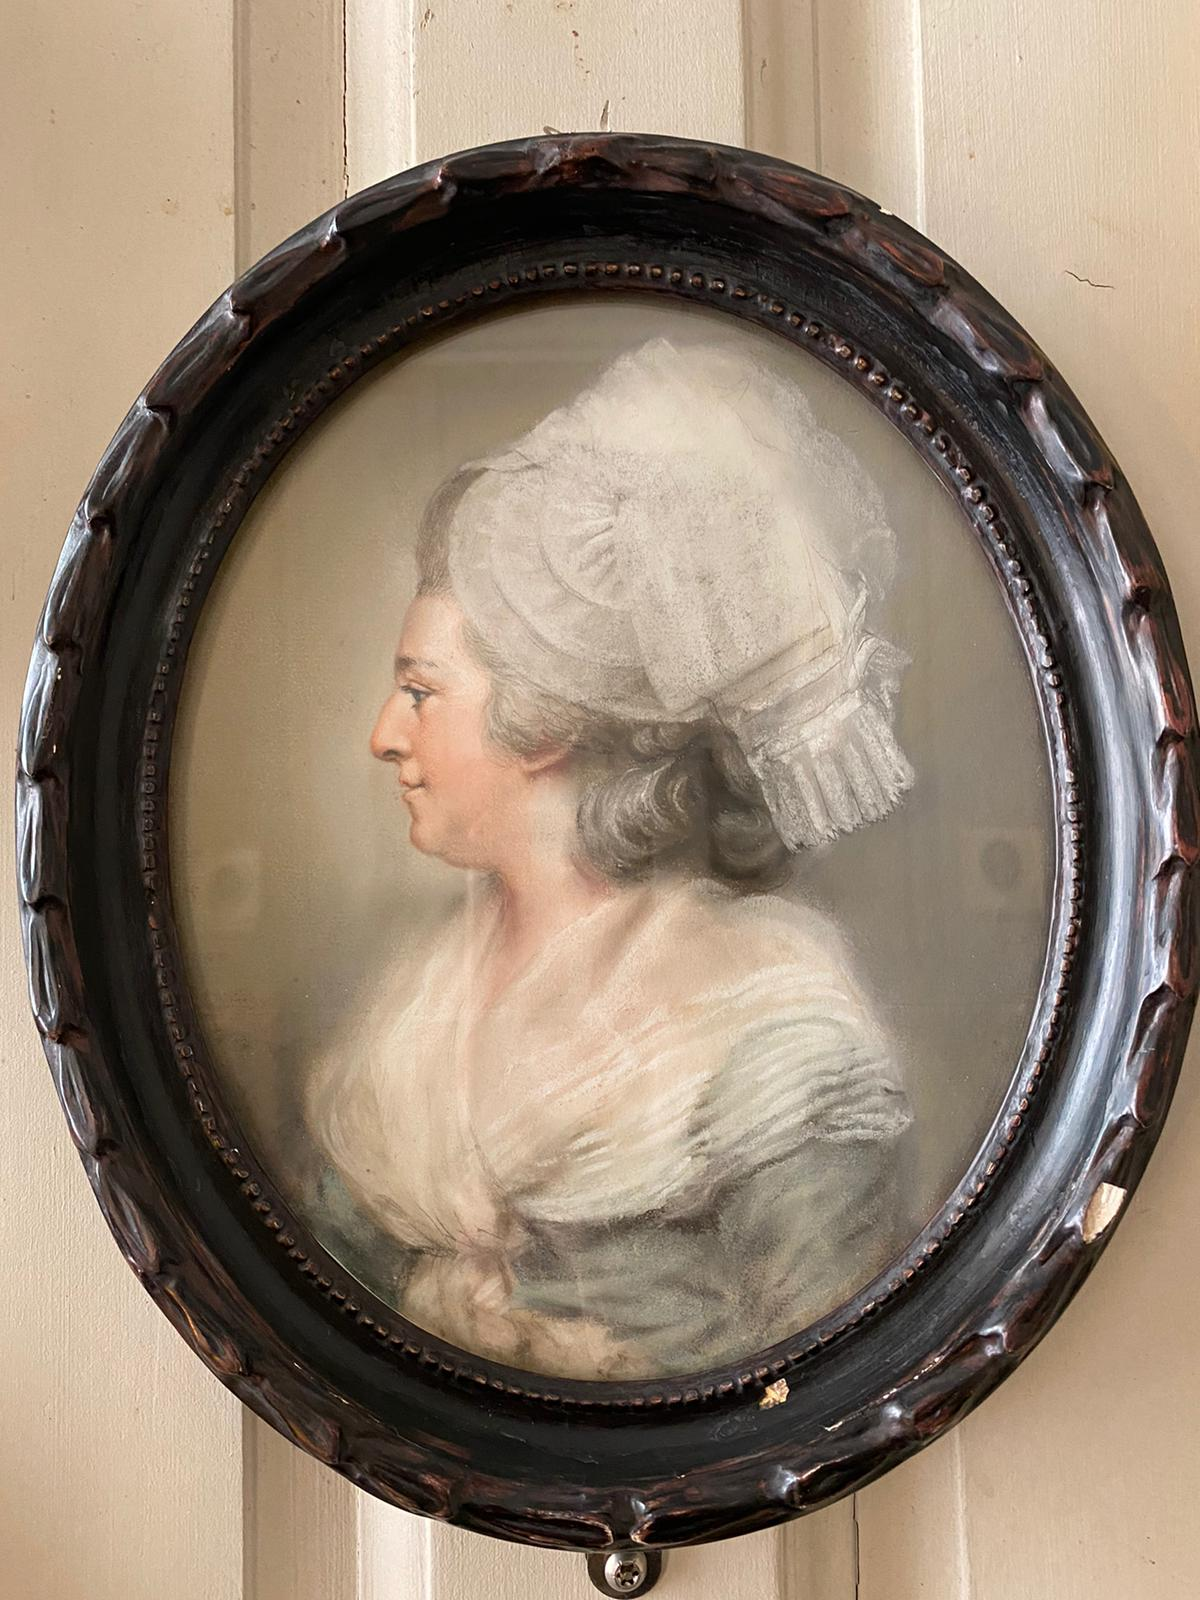 Bicentenary of the death of Lady Louisa Conolly (1743-1821)